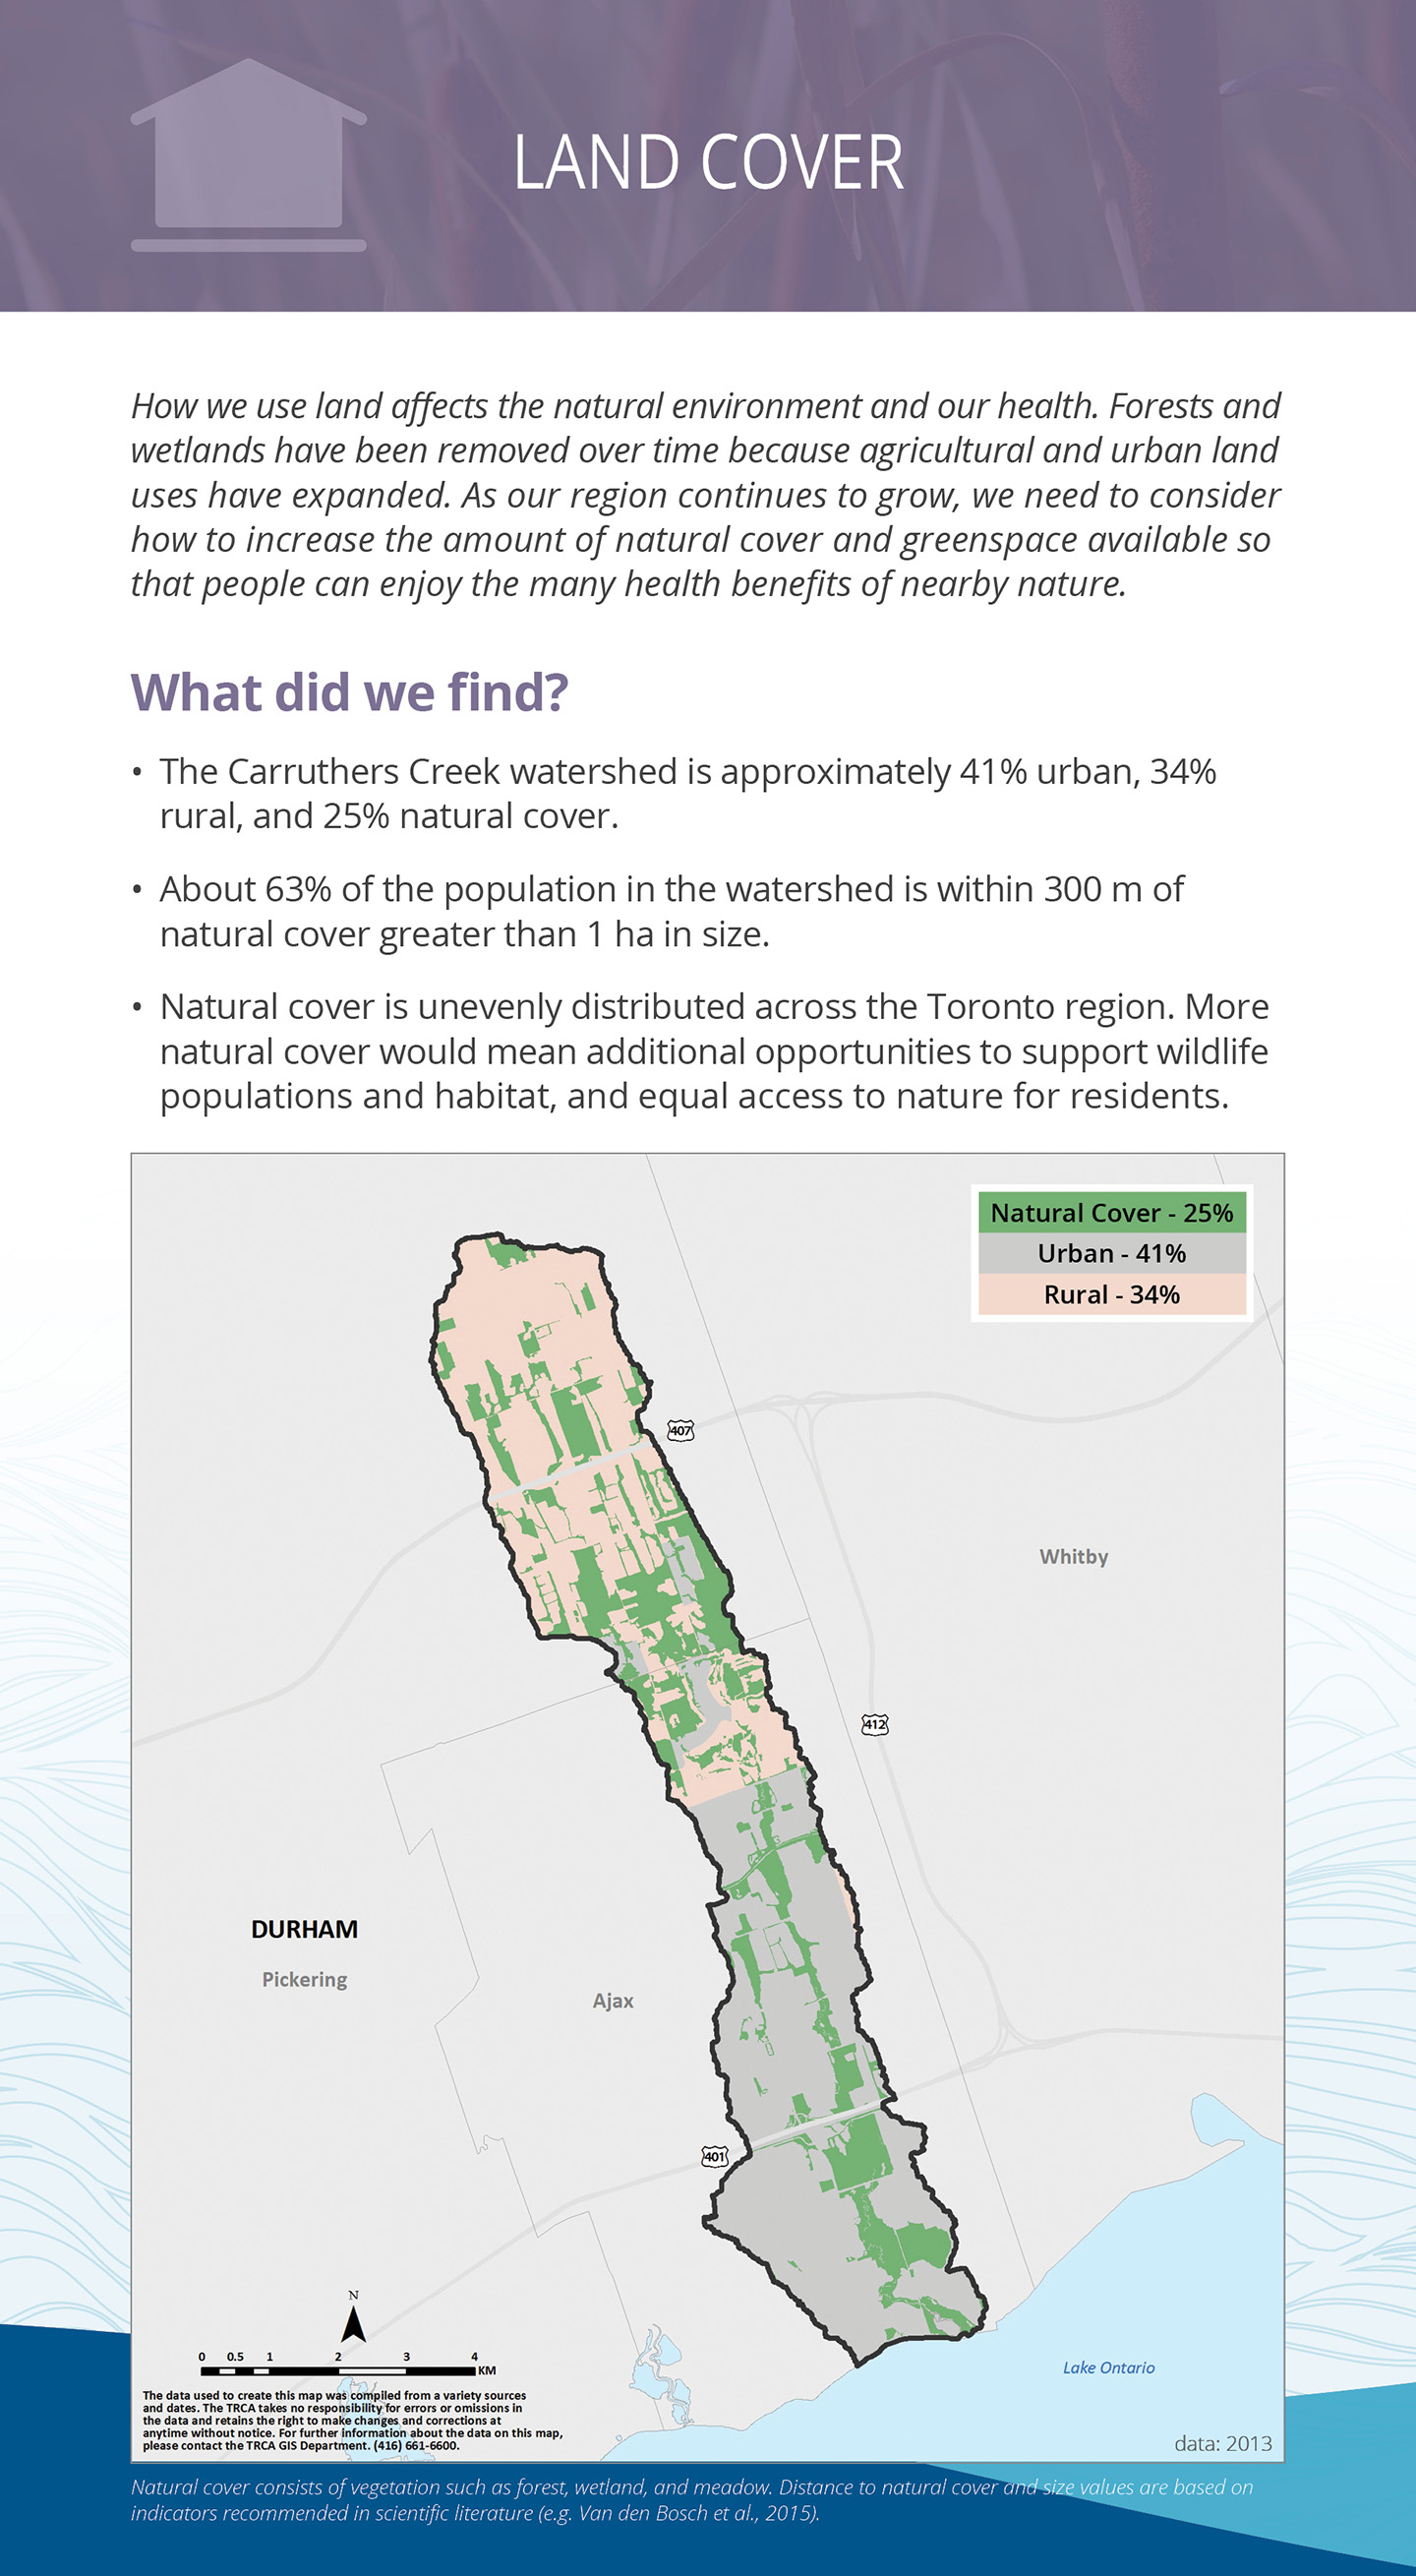 land cover panel of Carruthers Creek watershed report card